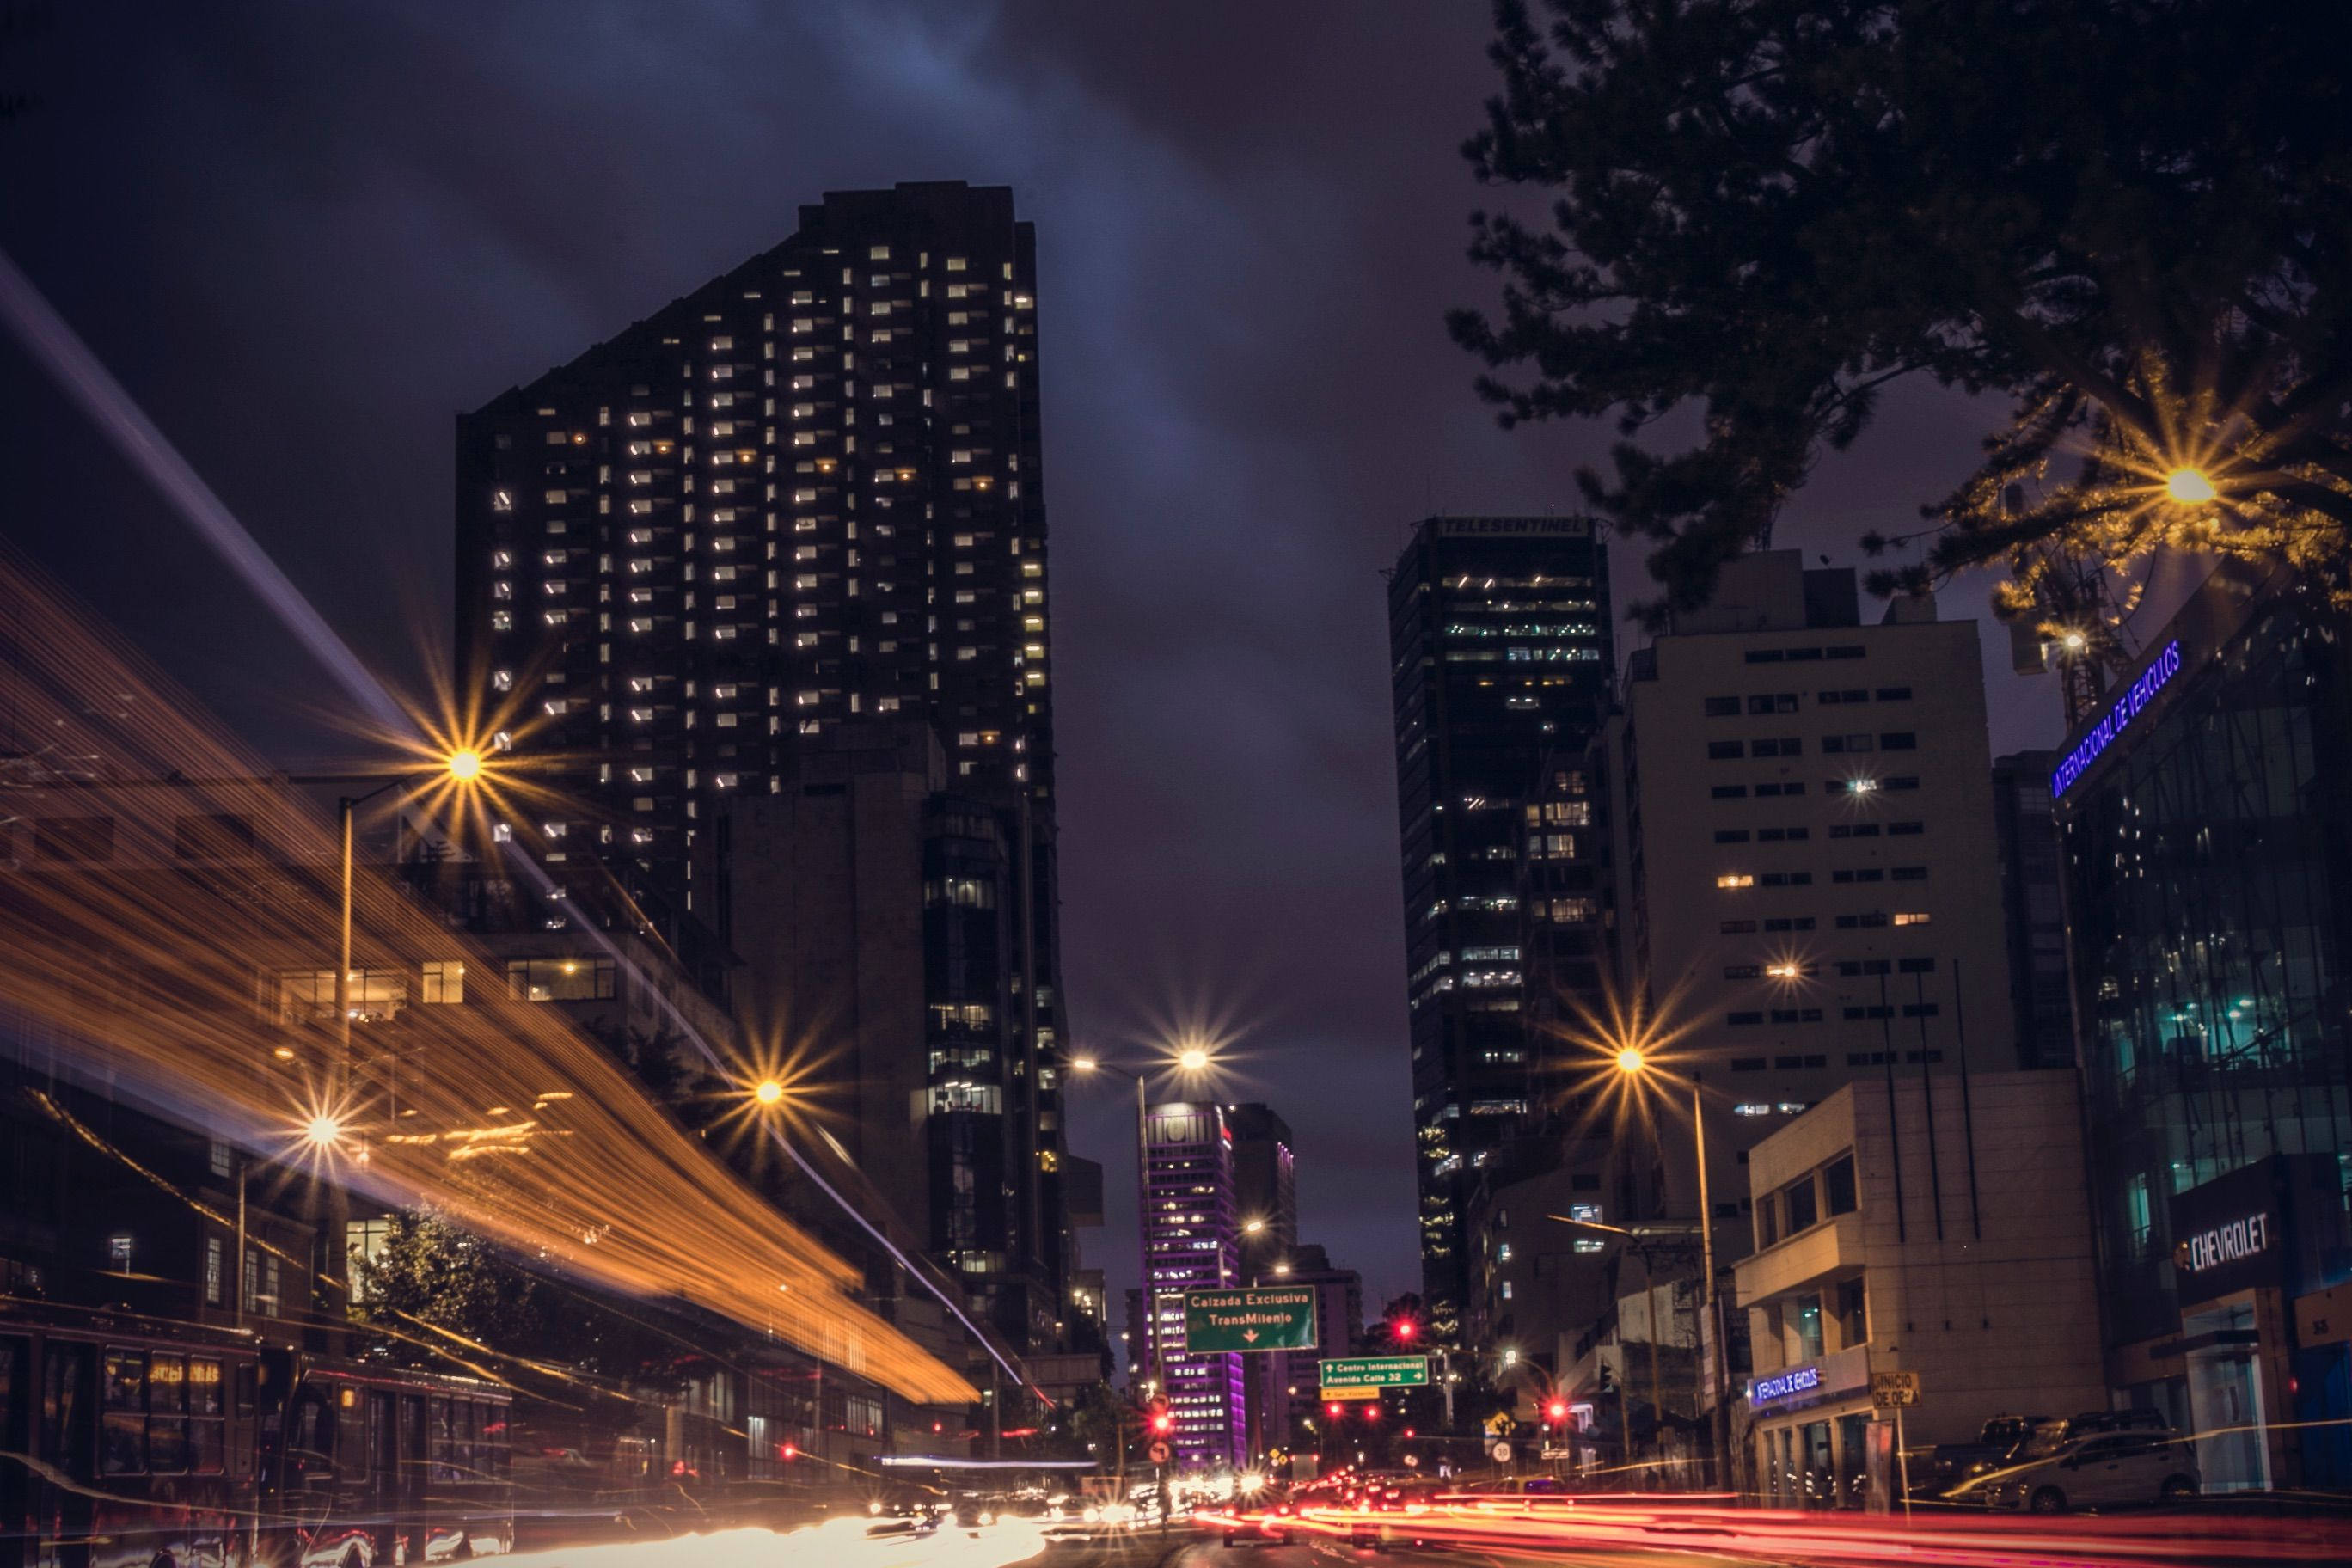 Bogotá, a capital colombiana, à noite: país é destaque nas recomendações do guia Lonely Planet / AltaGamba/Unsplash